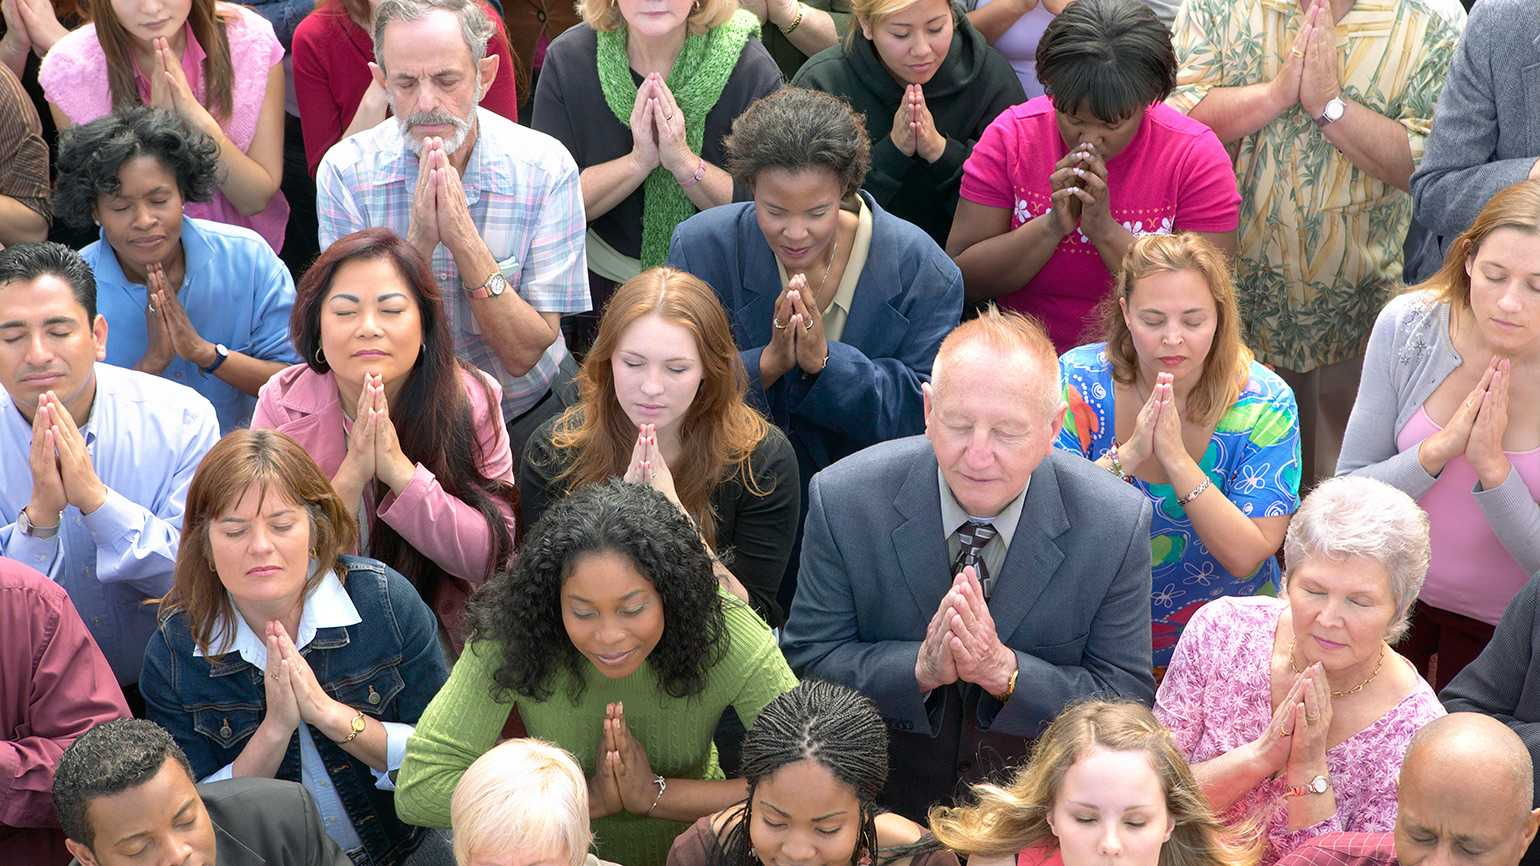 How Does God Hear All Our Prayers at Once? | Guideposts